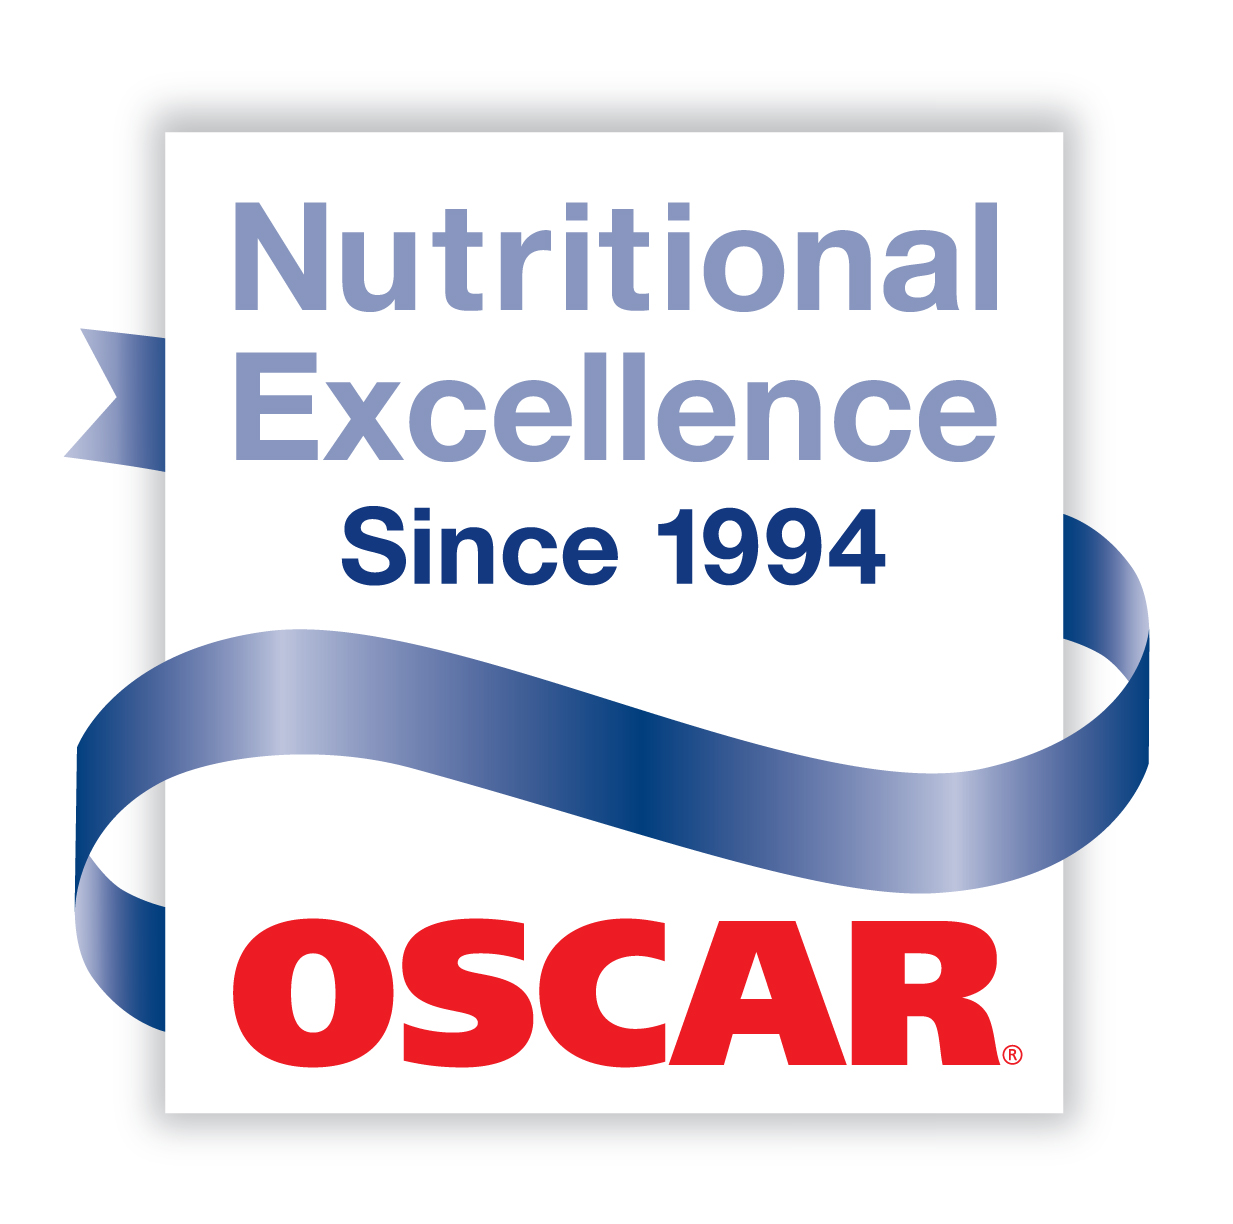 Oscar - Pet Food Franchise